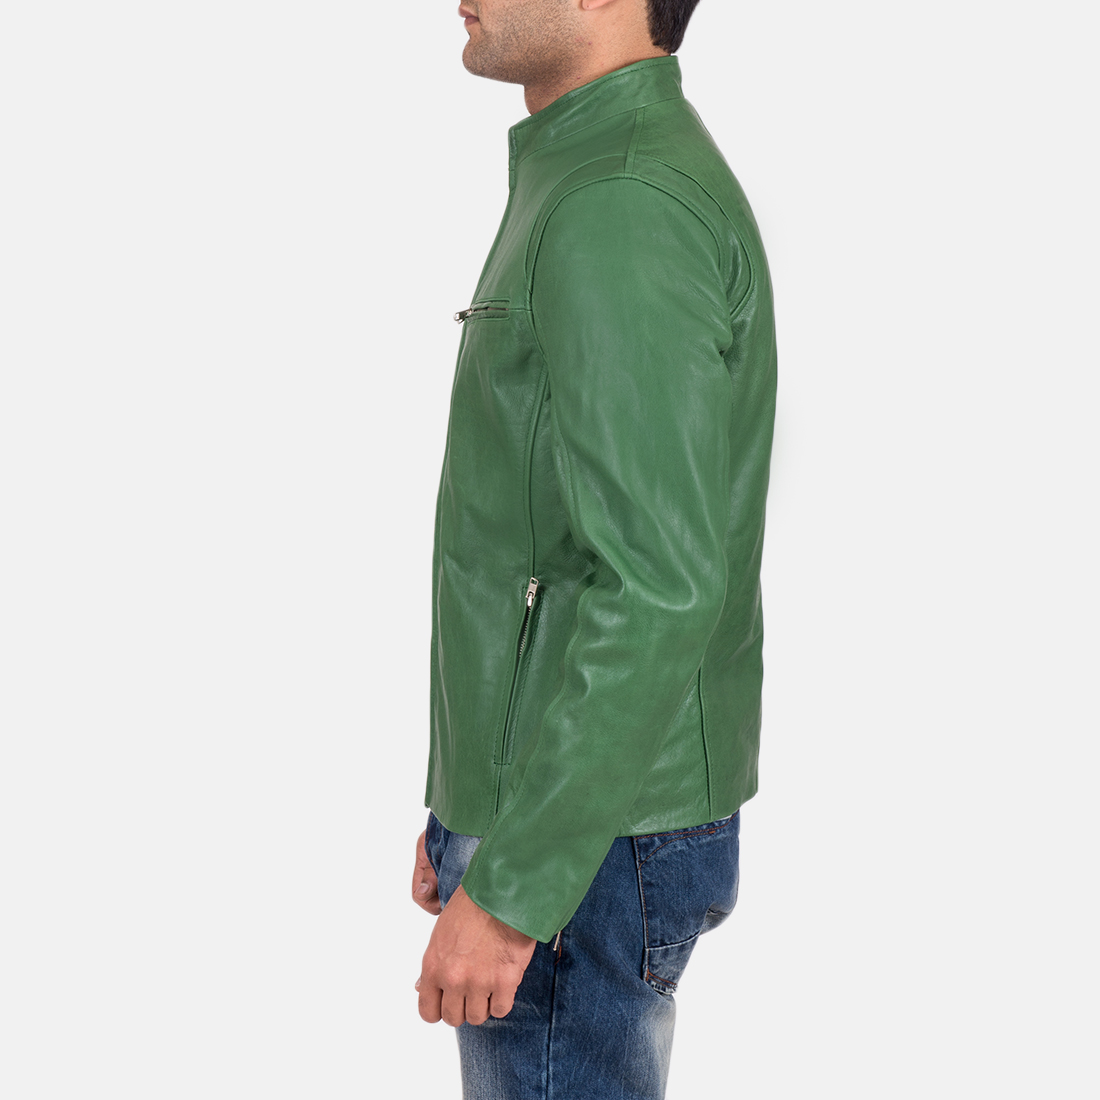 Mens Ionic Green Leather Jacket 5